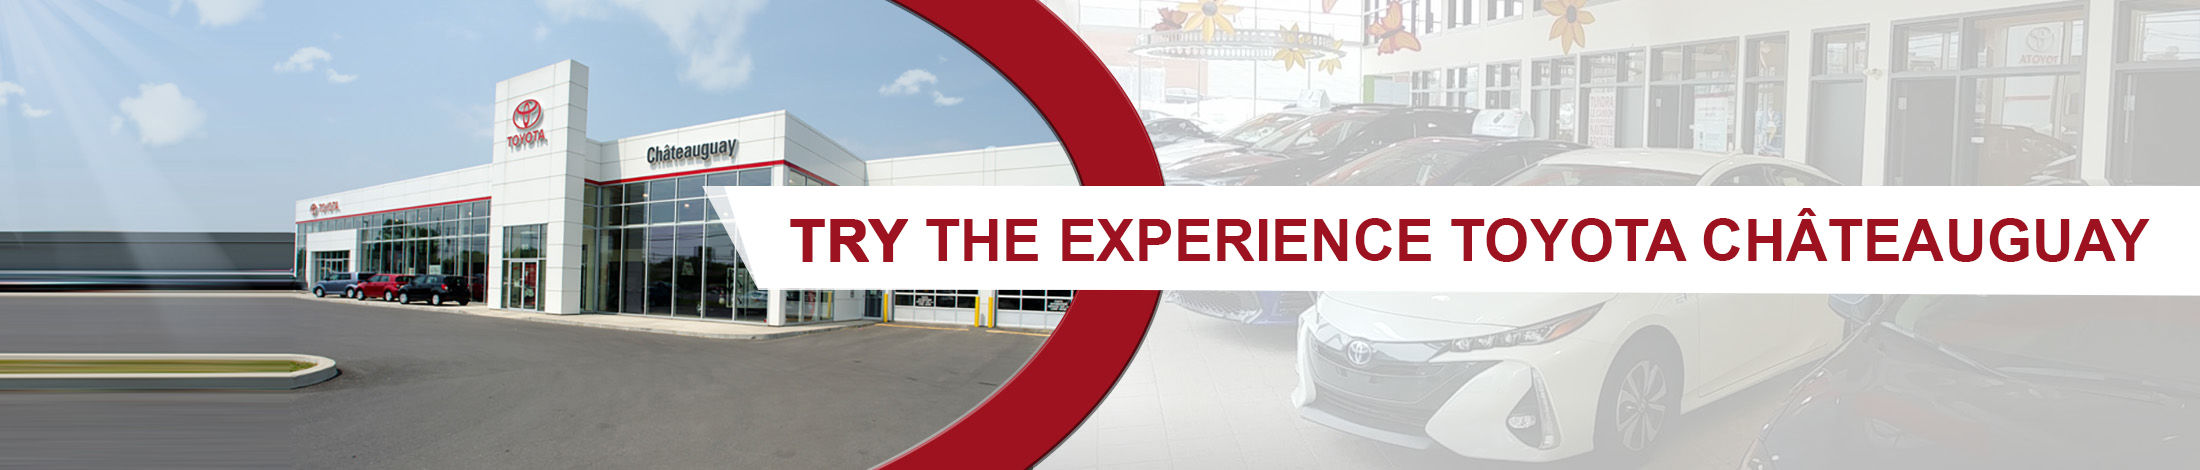 Try the experience Toyota Châteuguay